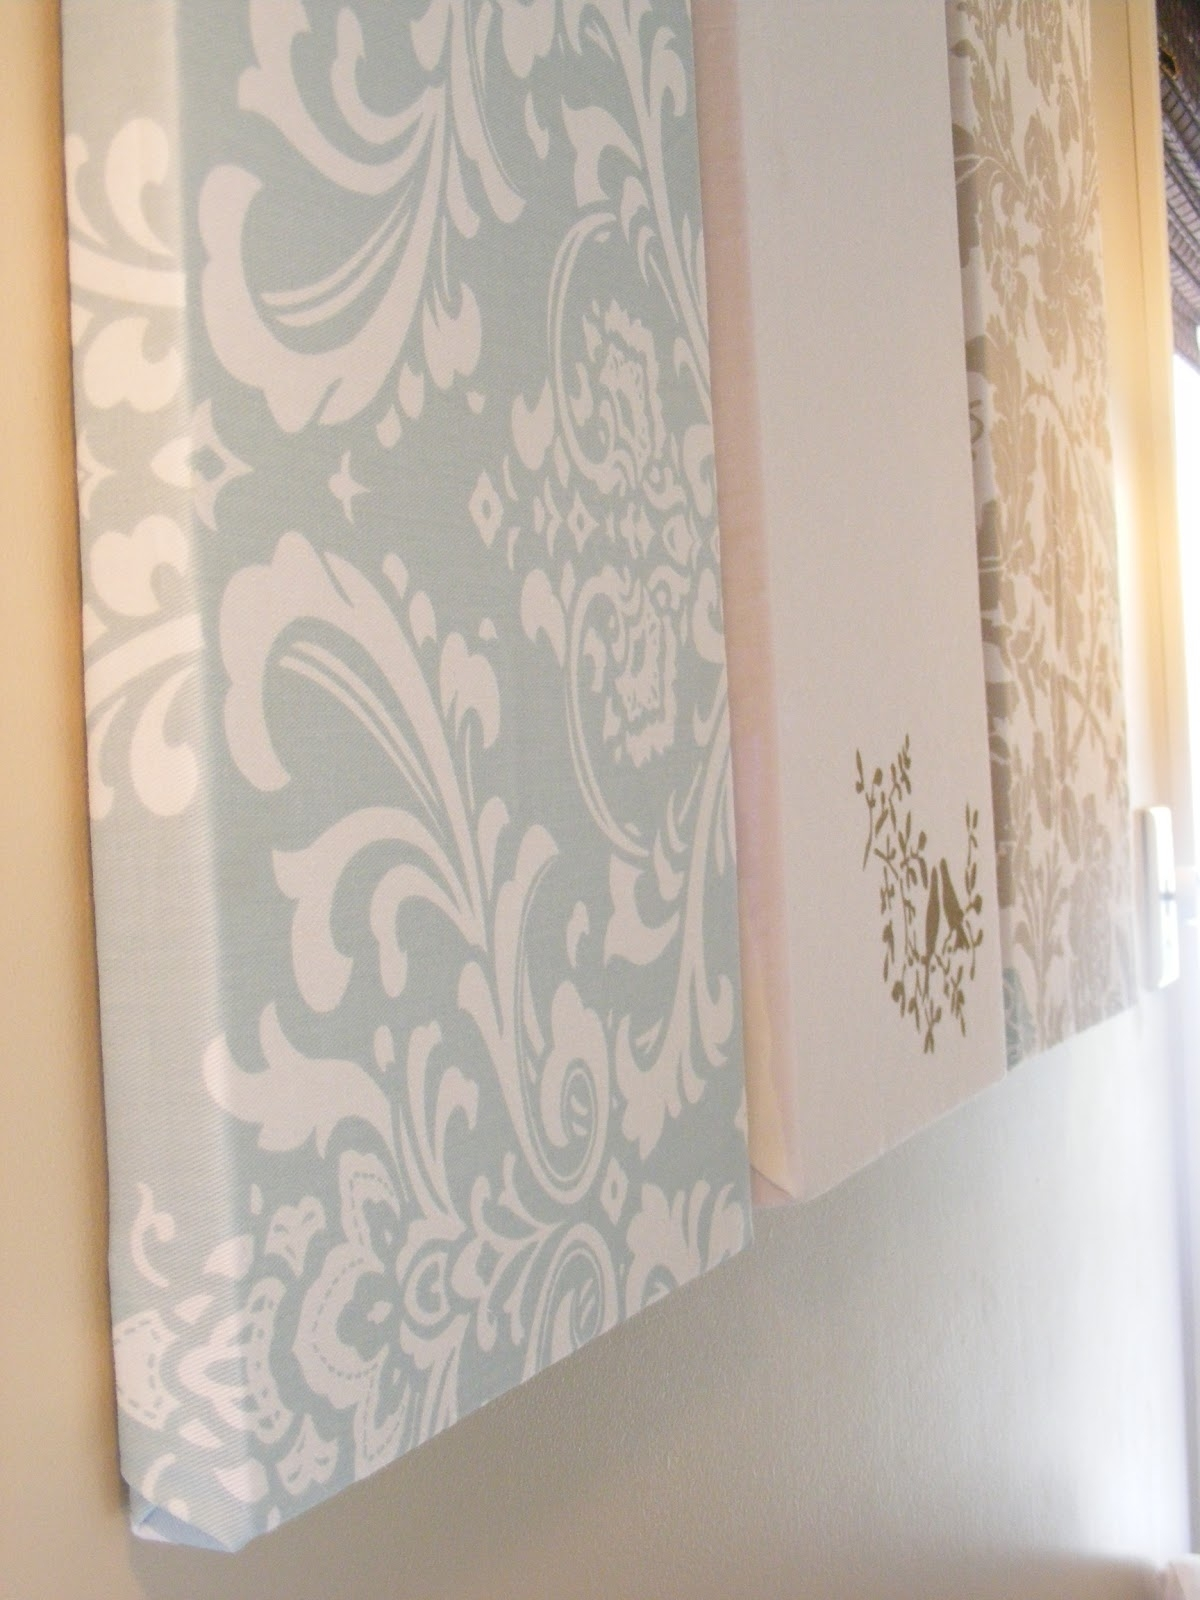 The Complete Guide To Imperfect Homemaking: Simple, Thrifty Diy Art With Regard To Latest Homemade Wall Art With Fabric (View 2 of 15)